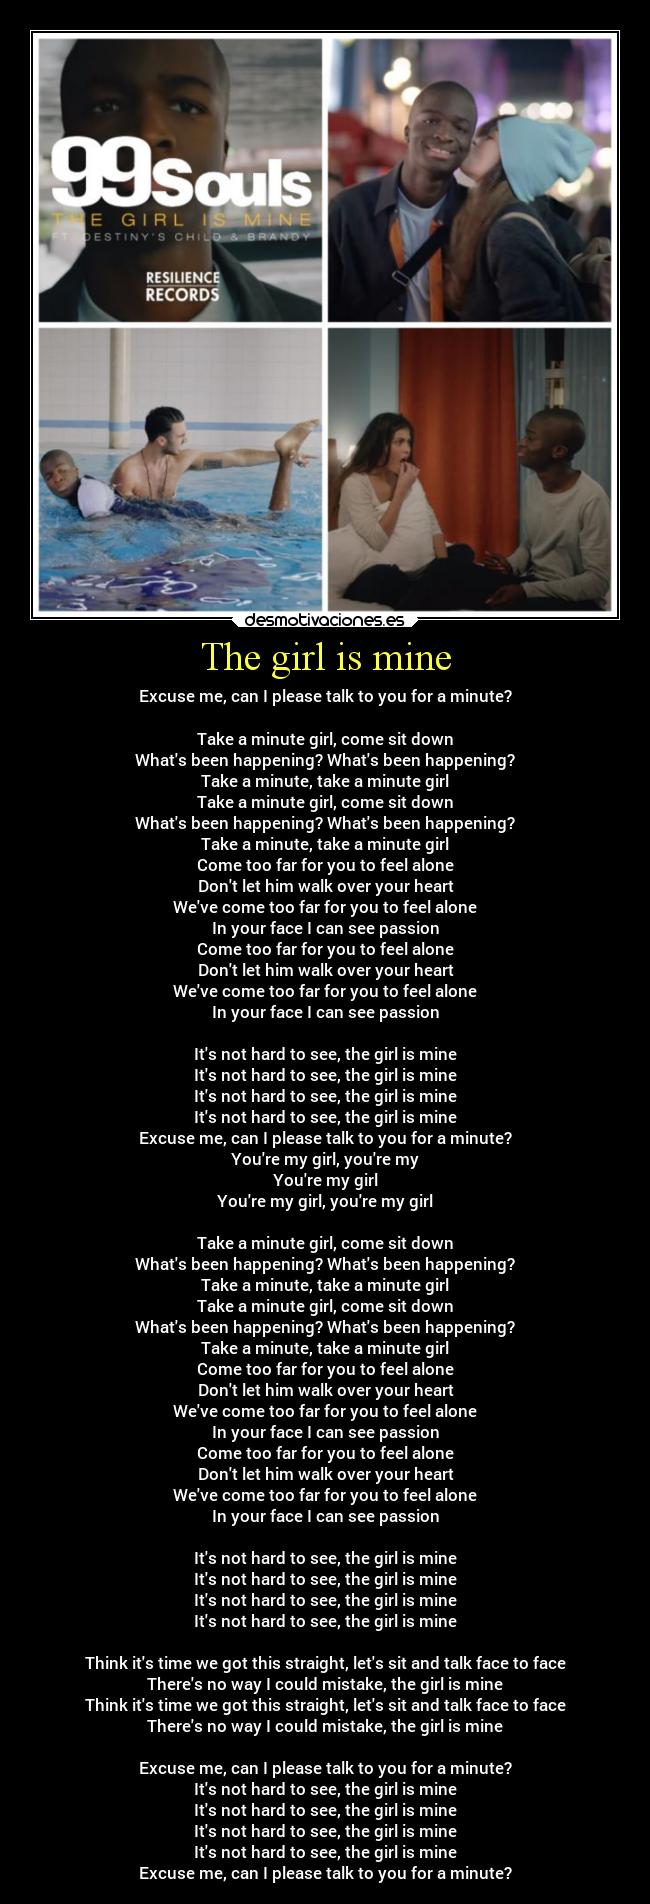 The girl is mine - Excuse me, can I please talk to you for a minute?  Take a minute girl, come sit down Whats been happening? Whats been happening? Take a minute, take a minute girl Take a minute girl, come sit down Whats been happening? Whats been happening? Take a minute, take a minute girl Come too far for you to feel alone Dont let him walk over your heart Weve come too far for you to feel alone In your face I can see passion Come too far for you to feel alone Dont let him walk over your heart Weve come too far for you to feel alone In your face I can see passion  Its not hard to see, the girl is mine Its not hard to see, the girl is mine Its not hard to see, the girl is mine Its not hard to see, the girl is mine Excuse me, can I please talk to you for a minute? Youre my girl, youre my Youre my girl Youre my girl, youre my girl  Take a minute girl, come sit down Whats been happening? Whats been happening? Take a minute, take a minute girl Take a minute girl, come sit down Whats been happening? Whats been happening? Take a minute, take a minute girl Come too far for you to feel alone Dont let him walk over your heart Weve come too far for you to feel alone In your face I can see passion Come too far for you to feel alone Dont let him walk over your heart Weve come too far for you to feel alone In your face I can see passion  Its not hard to see, the girl is mine Its not hard to see, the girl is mine Its not hard to see, the girl is mine Its not hard to see, the girl is mine  Think its time we got this straight, lets sit and talk face to face Theres no way I could mistake, the girl is mine Think its time we got this straight, lets sit and talk face to face Theres no way I could mistake, the girl is mine  Excuse me, can I please talk to you for a minute? Its not hard to see, the girl is mine Its not hard to see, the girl is mine Its not hard to see, the girl is mine Its not hard to see, the girl is mine Excuse me, can I please talk to you for a minute?